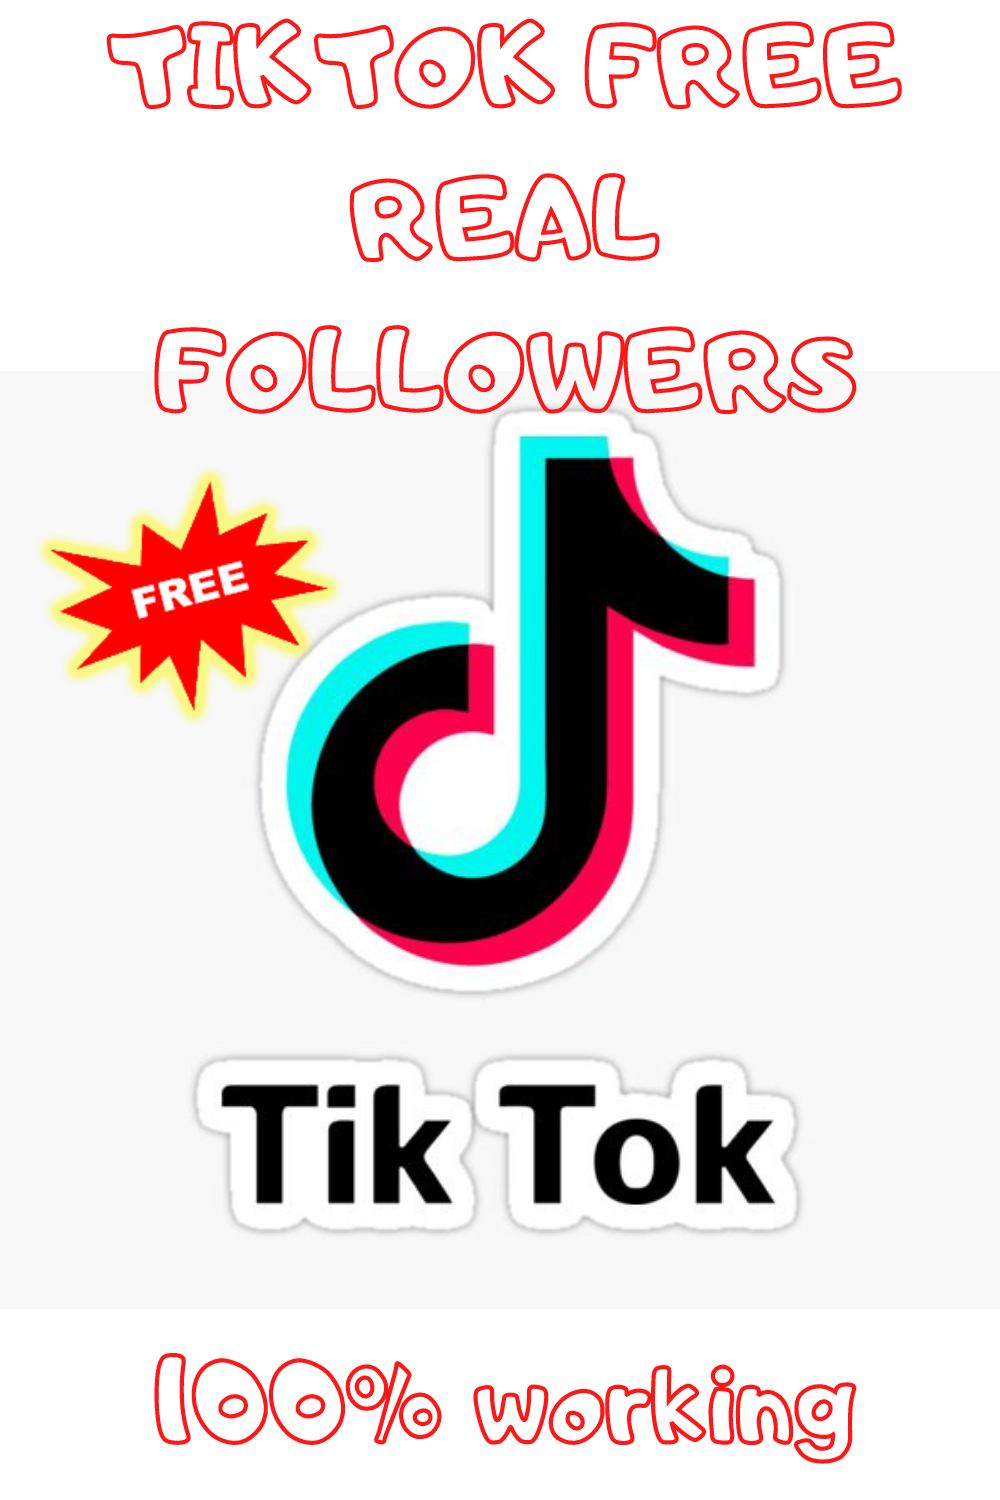 Get Up To 50 000 Free Tiktok Fans Limited Offer How To Get Famous Real Followers Free